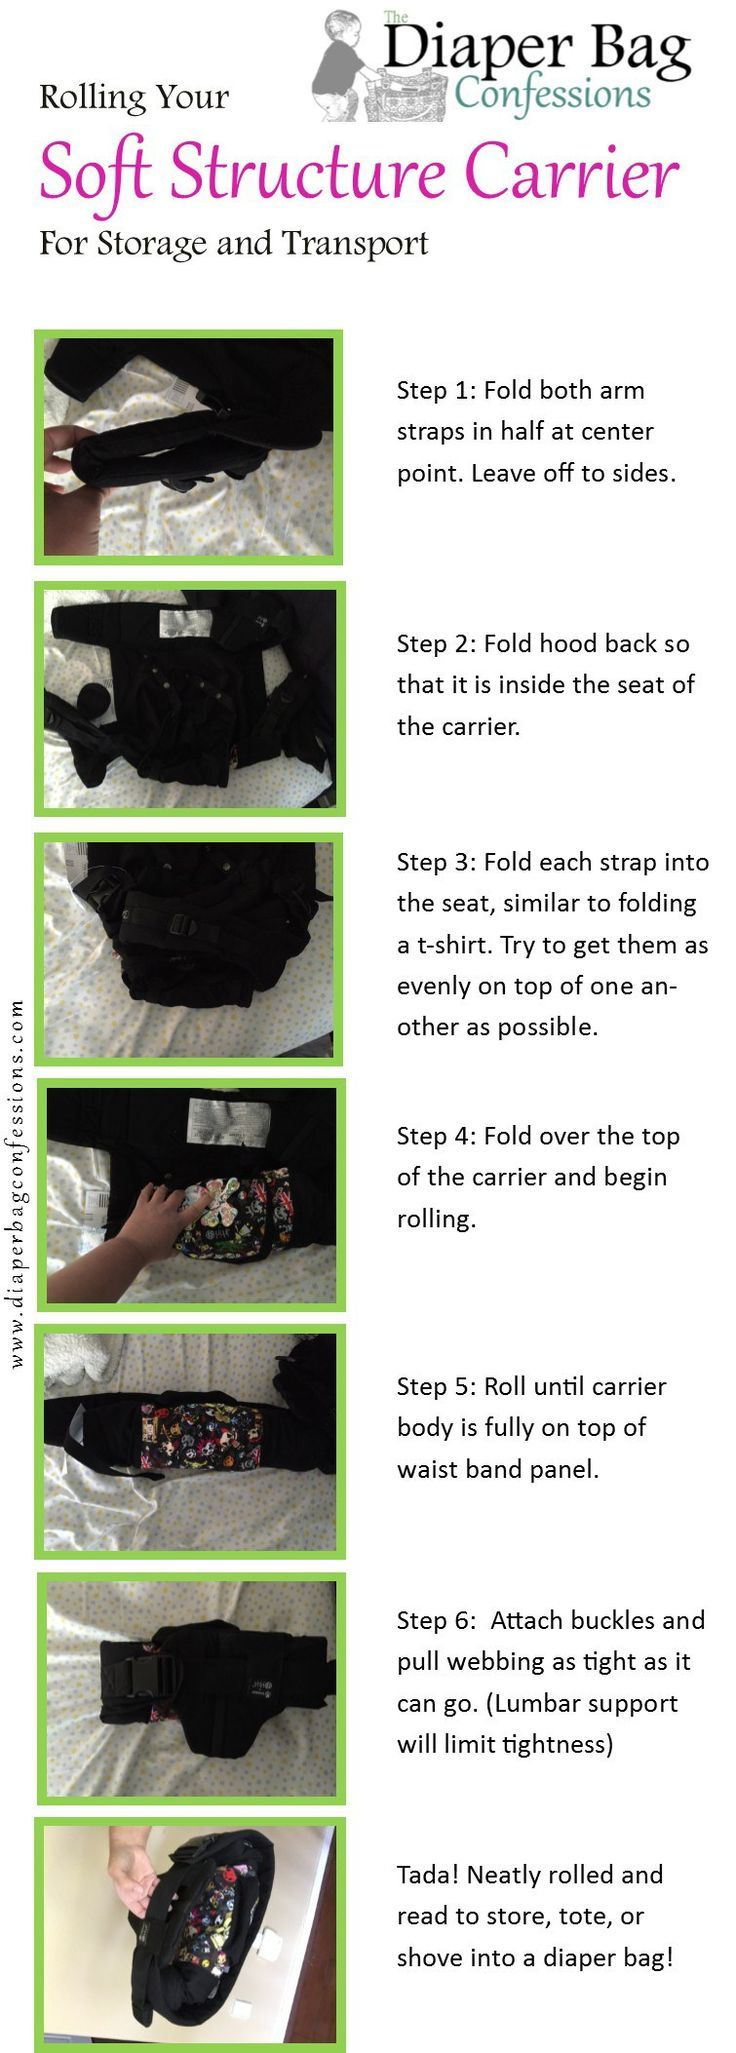 How to roll a Soft Structure Carrier for easy transporting and storing.   Lillebaby, Boba, Ergo Baby, Beco